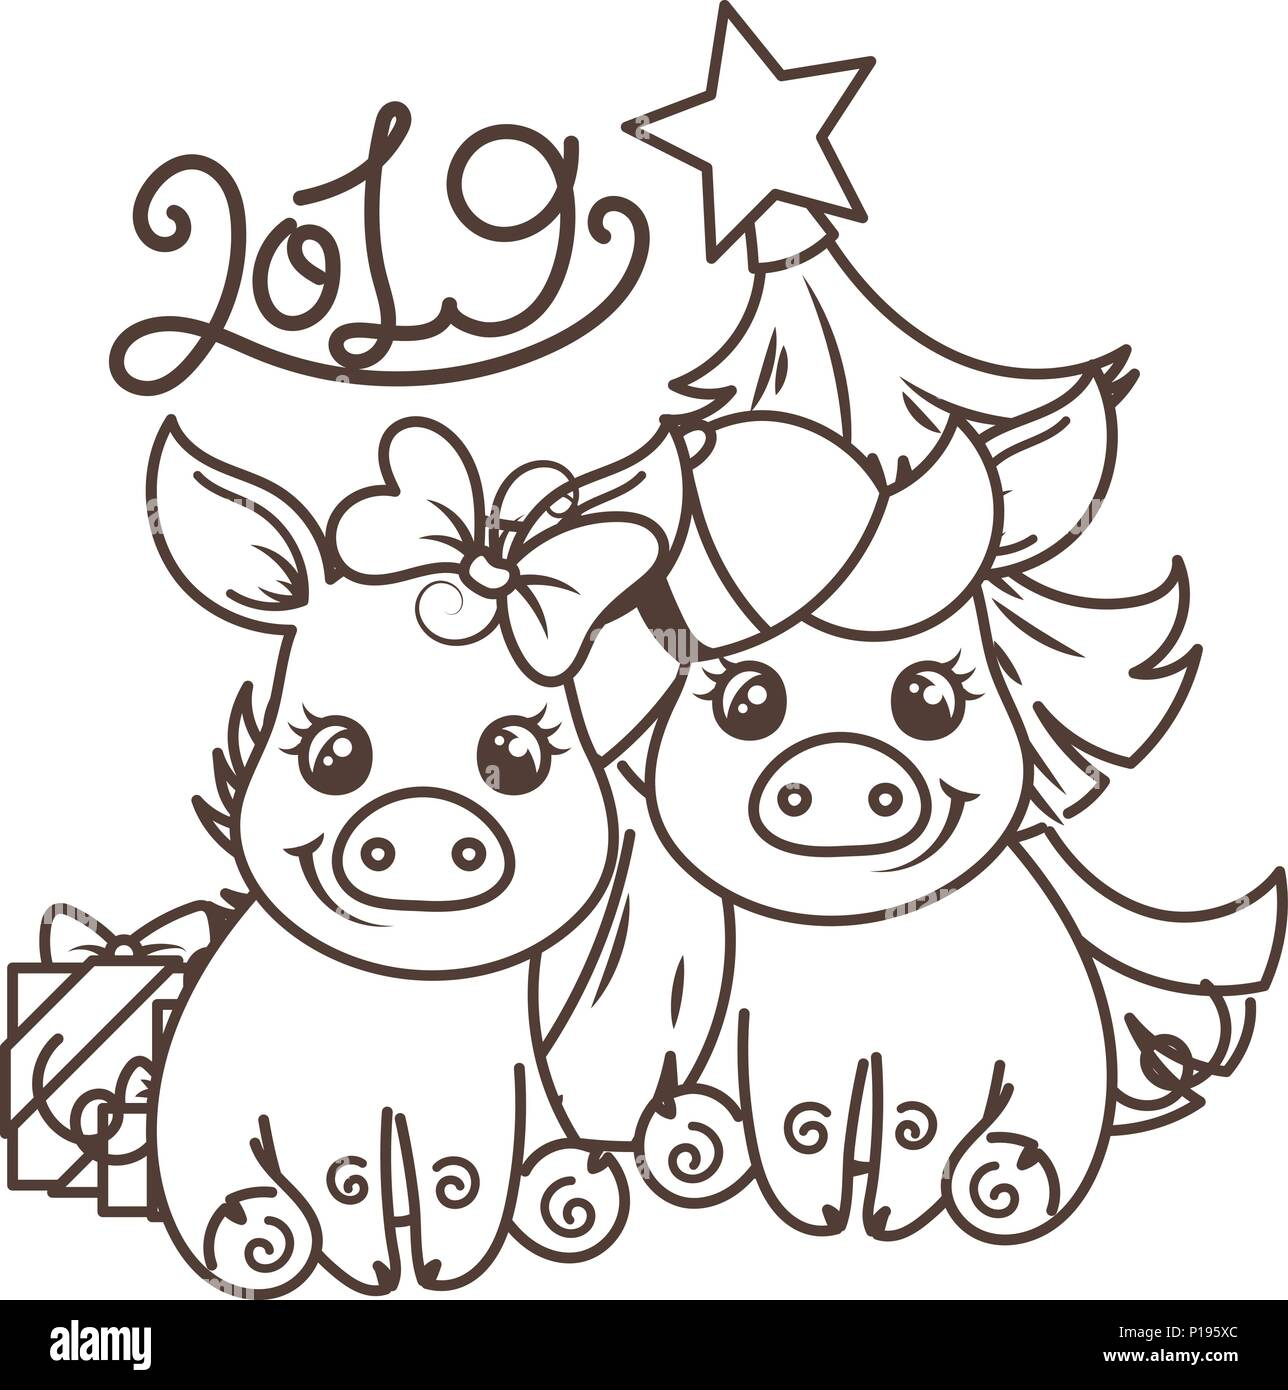 Chinese New Year 2019 Pig Coloring